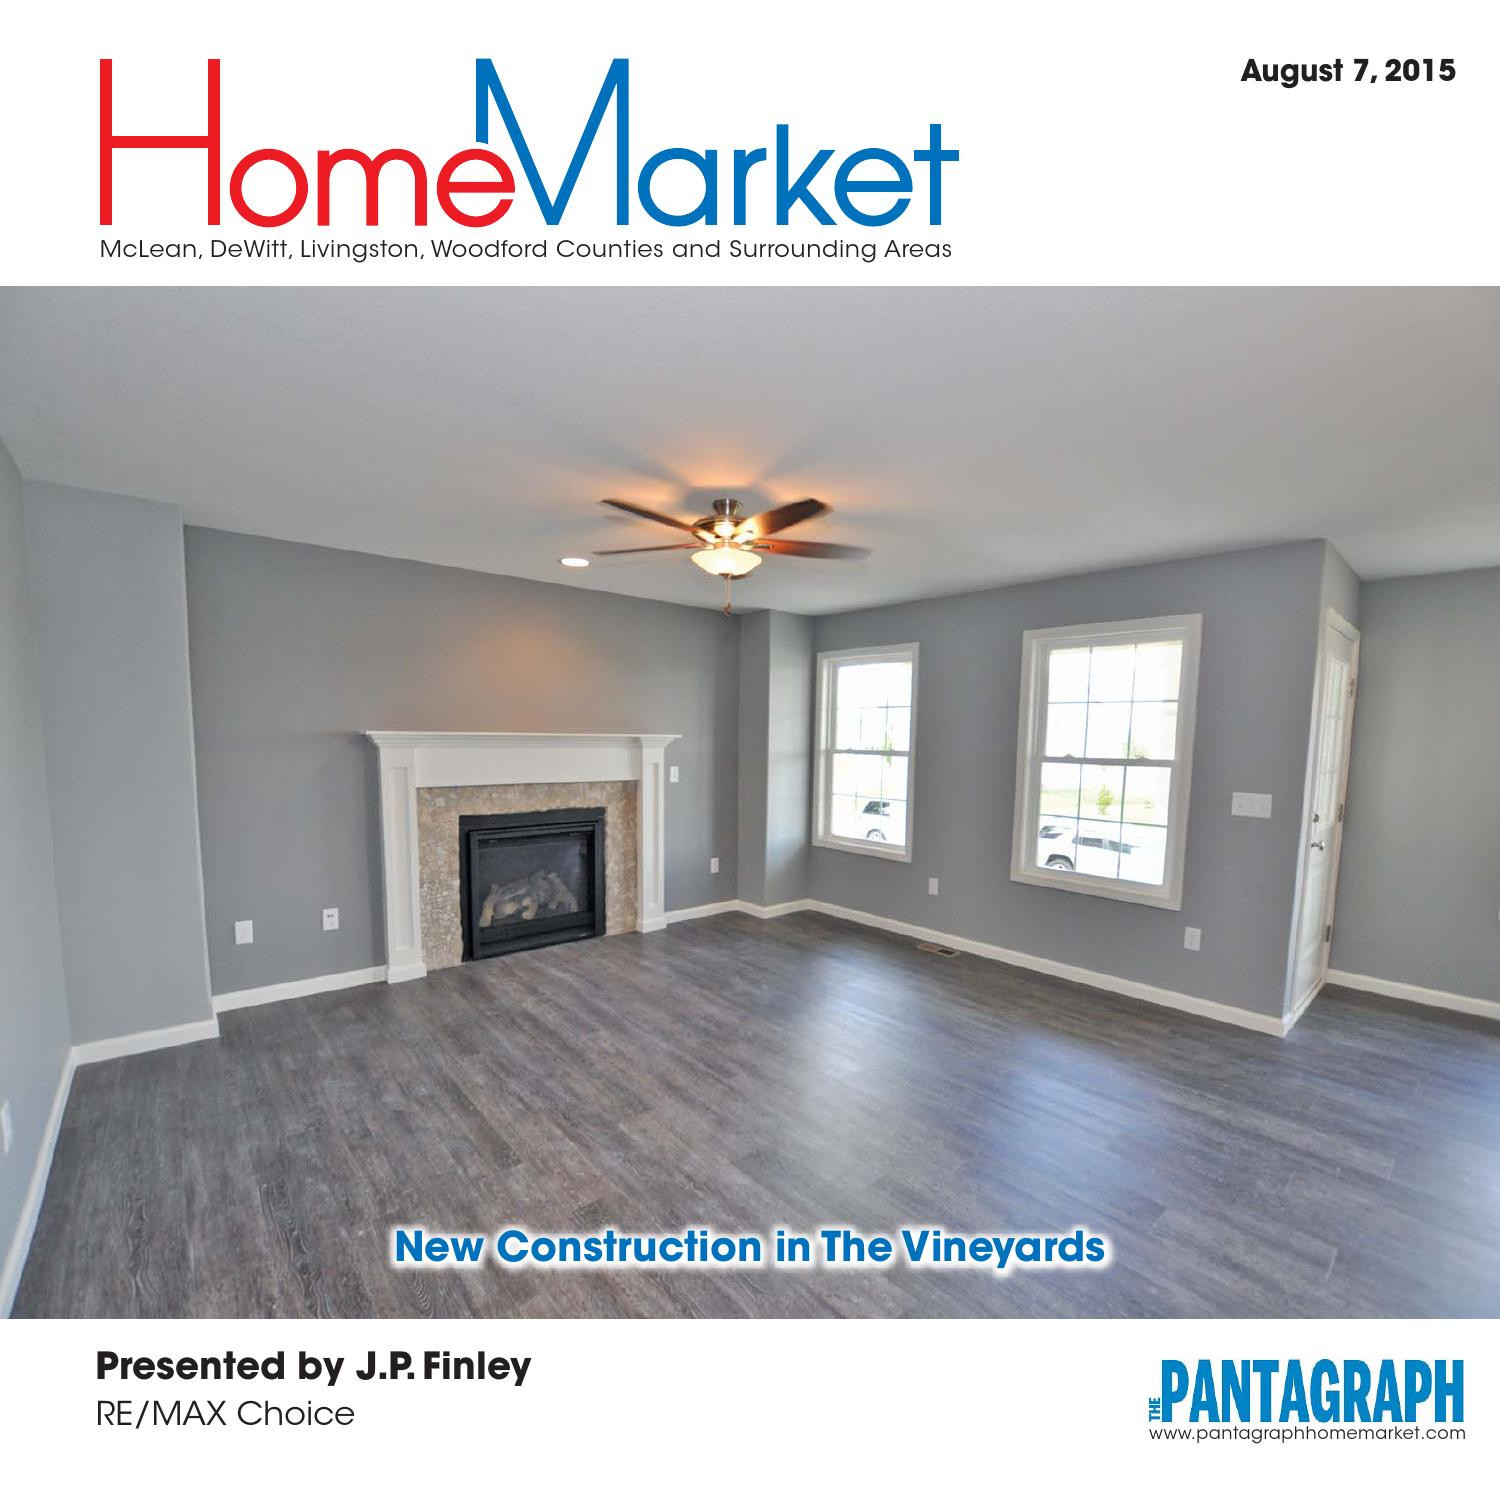 danbury ct hardwood flooring of august 7 2015 home market by panta graph issuu inside page 1